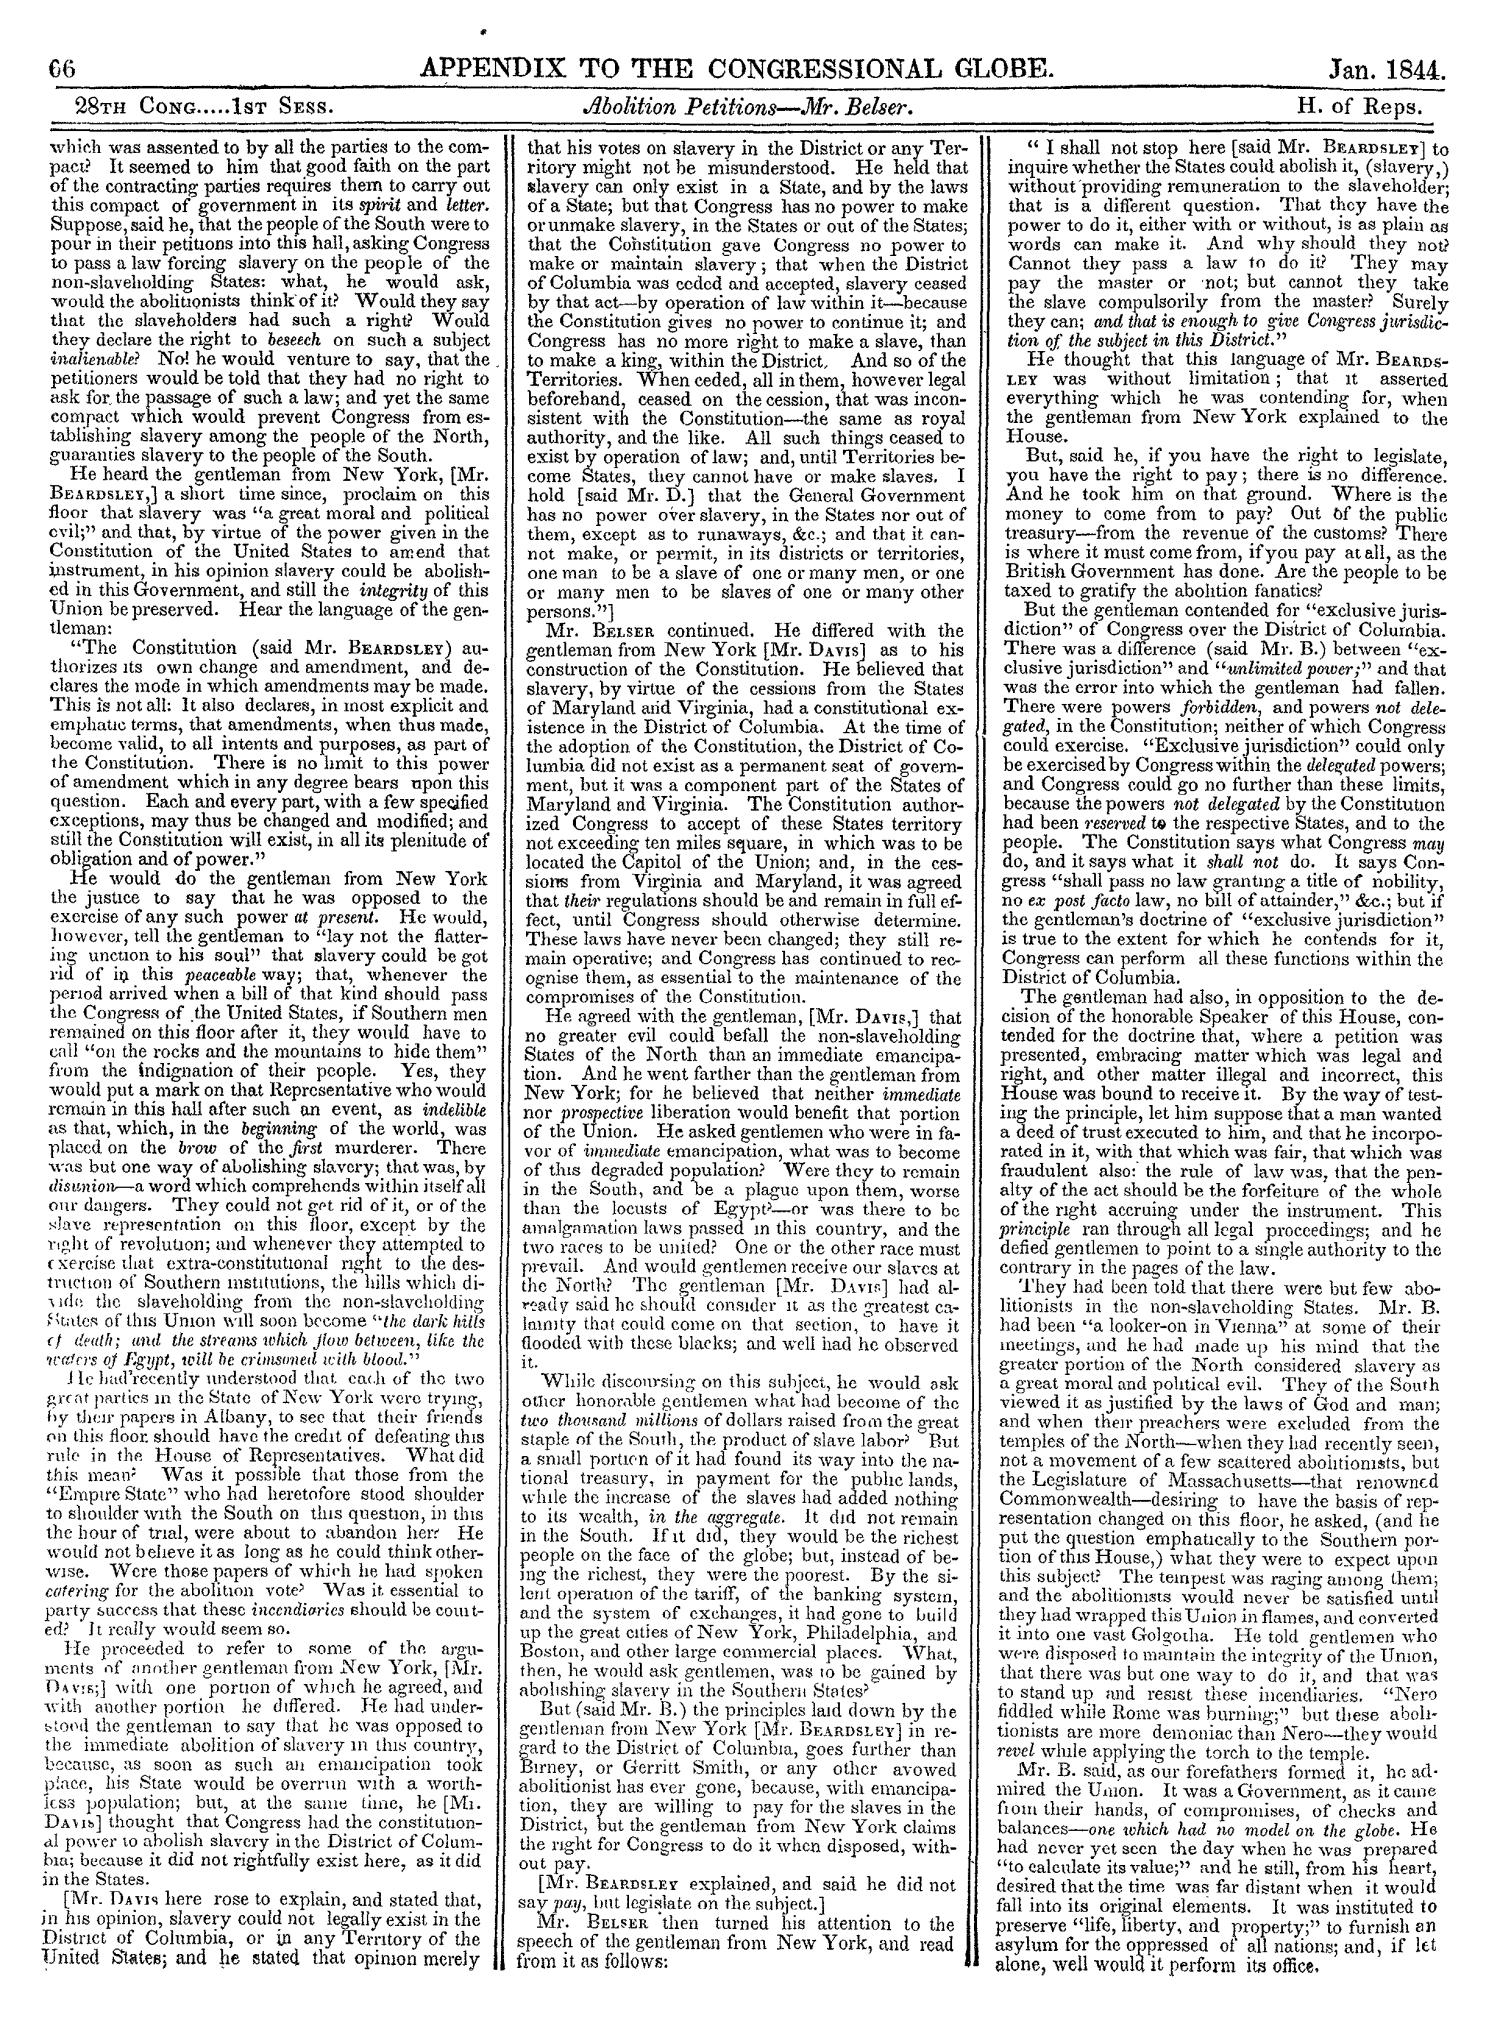 The Congressional Globe, Volume 13, Part 2: Twenty-Eighth Congress, First Session                                                                                                      66